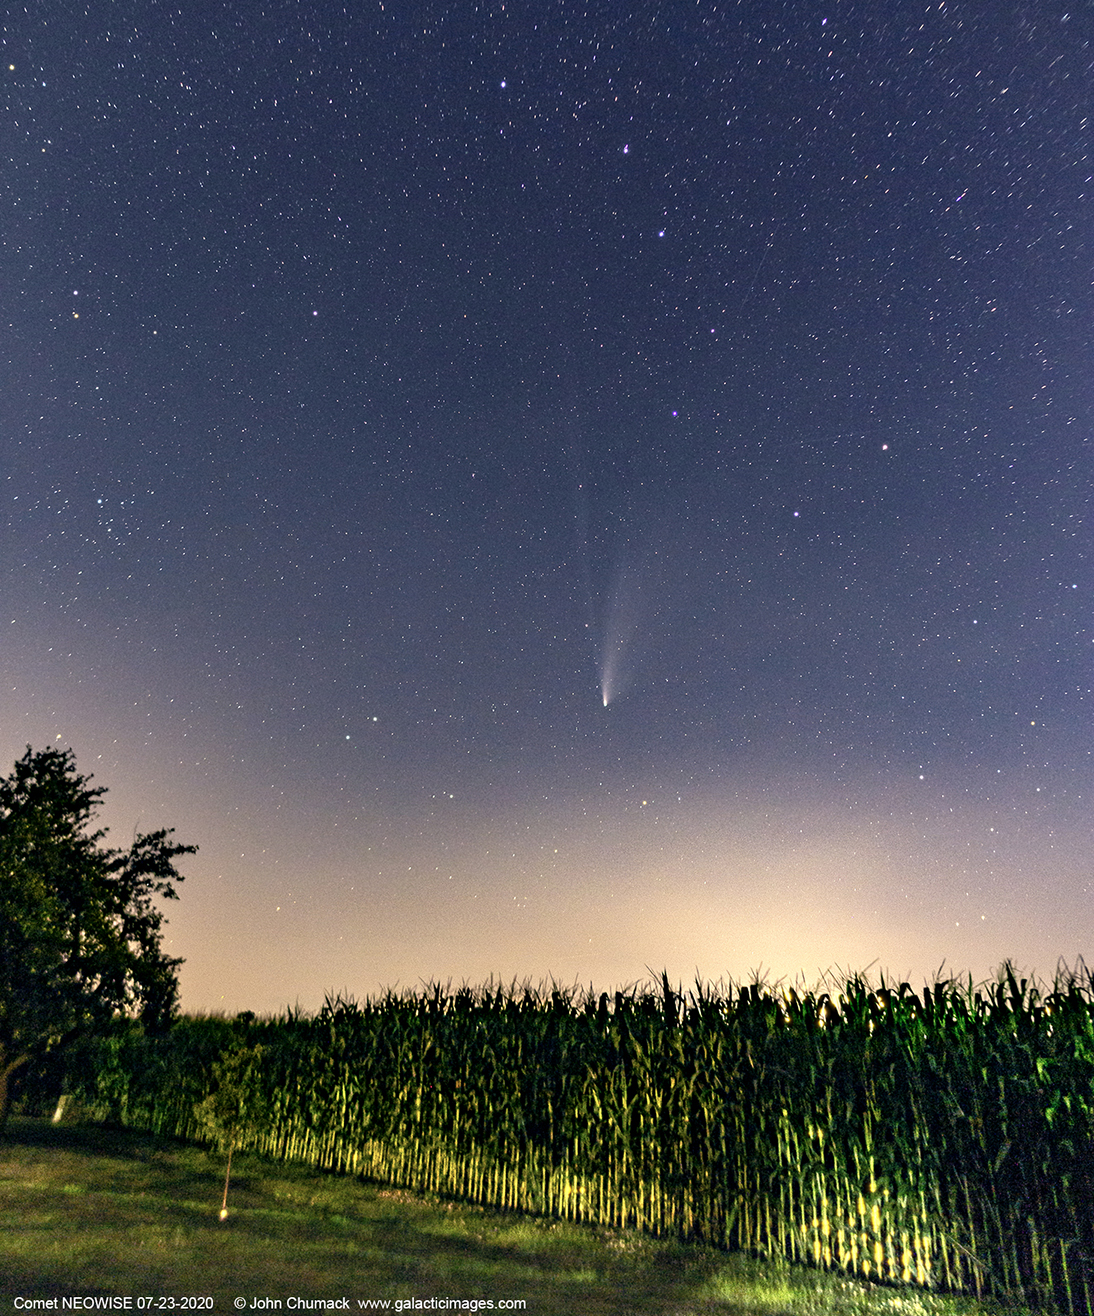 Comet NEOWISE C/2020 F3 in the Evening sky on 07-23-2020 overlooking an Ohio Cornfield